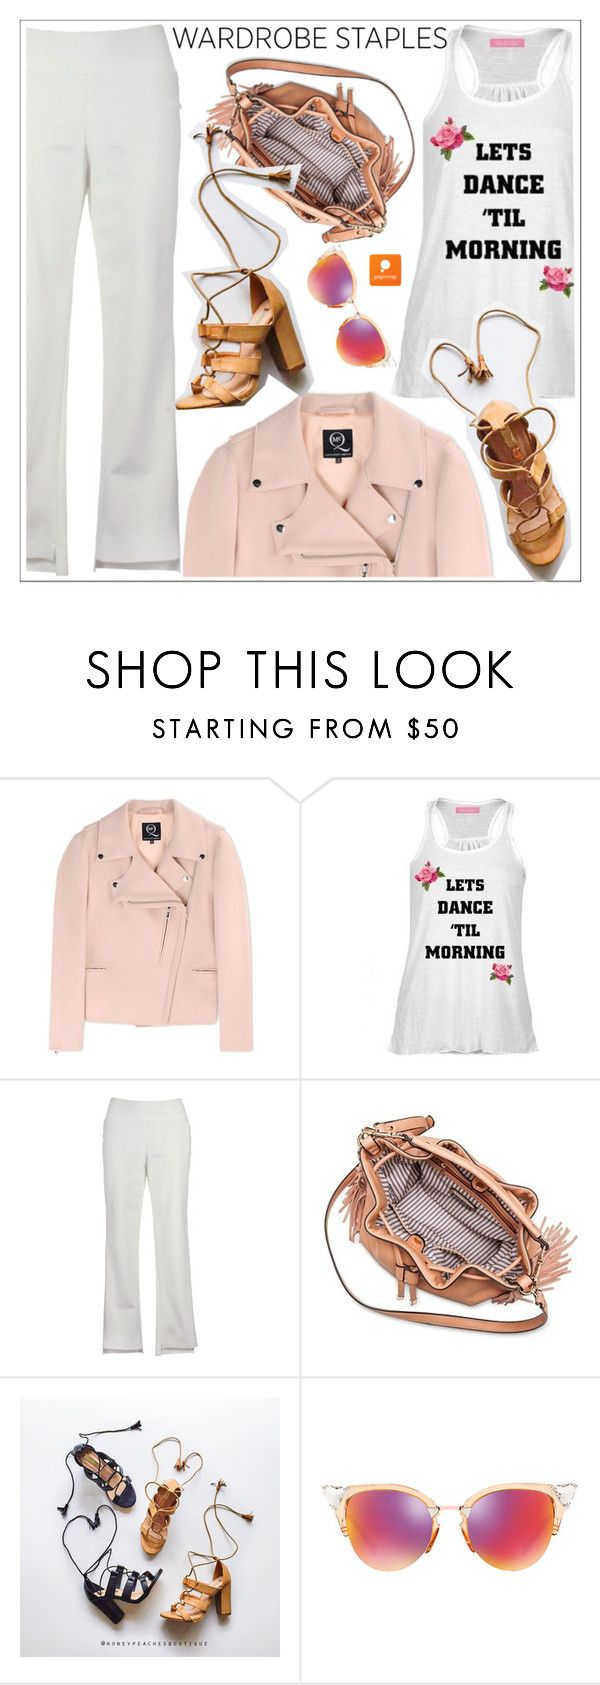 """Waedrobe staples"" by teoecar ❤ liked on Polyvore featuring McQ by Alexander McQueen, Moda Luxe, Billini and Fendi"